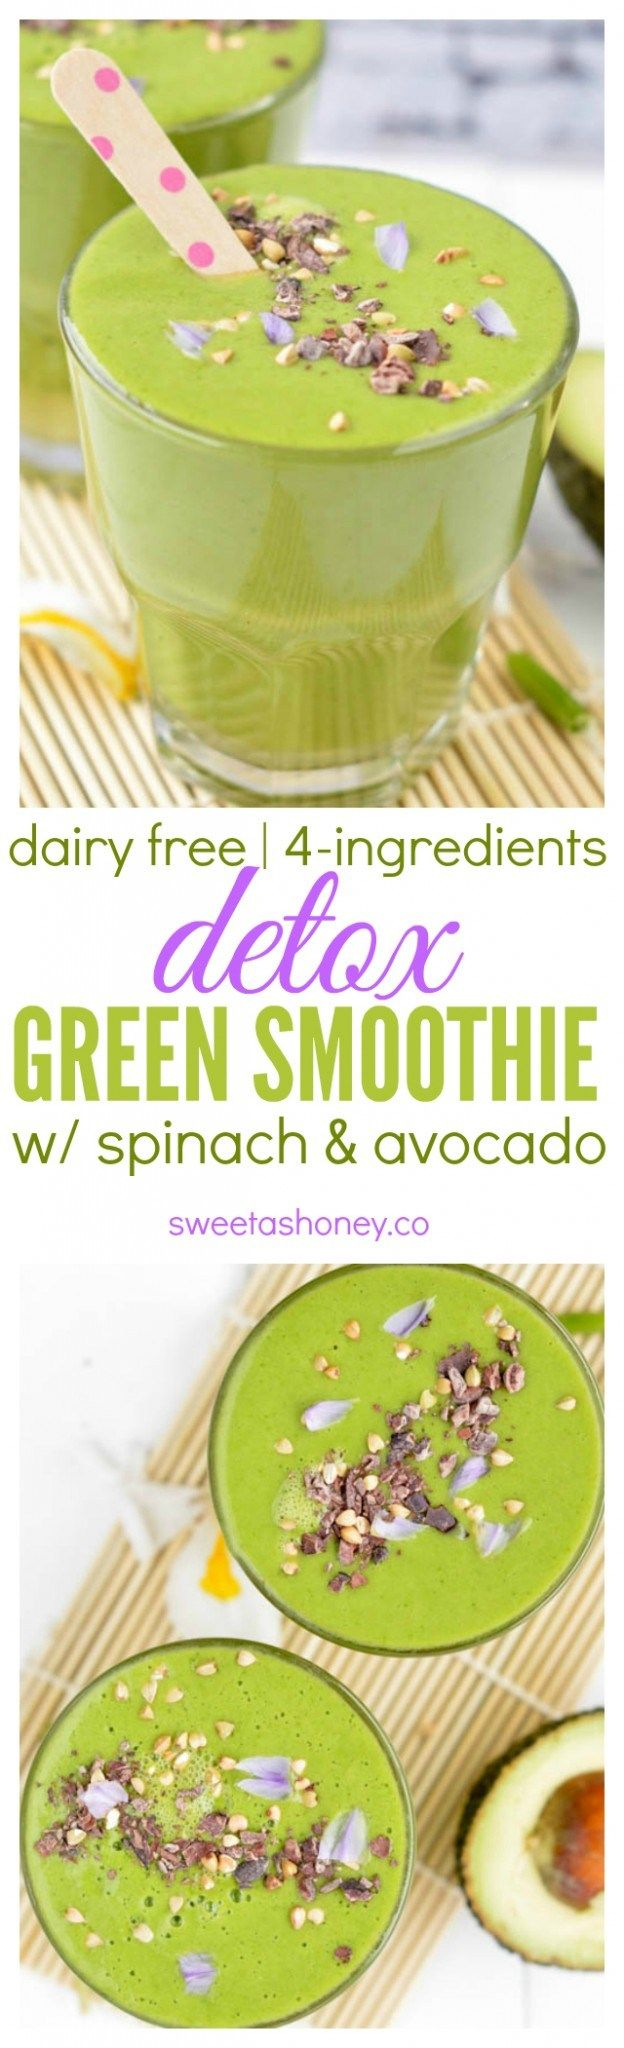 4-ingredients Detox Green Smoothie with Spinach and Pineapple. Dairy free. Vegan. Clean Smoothie with almond milk